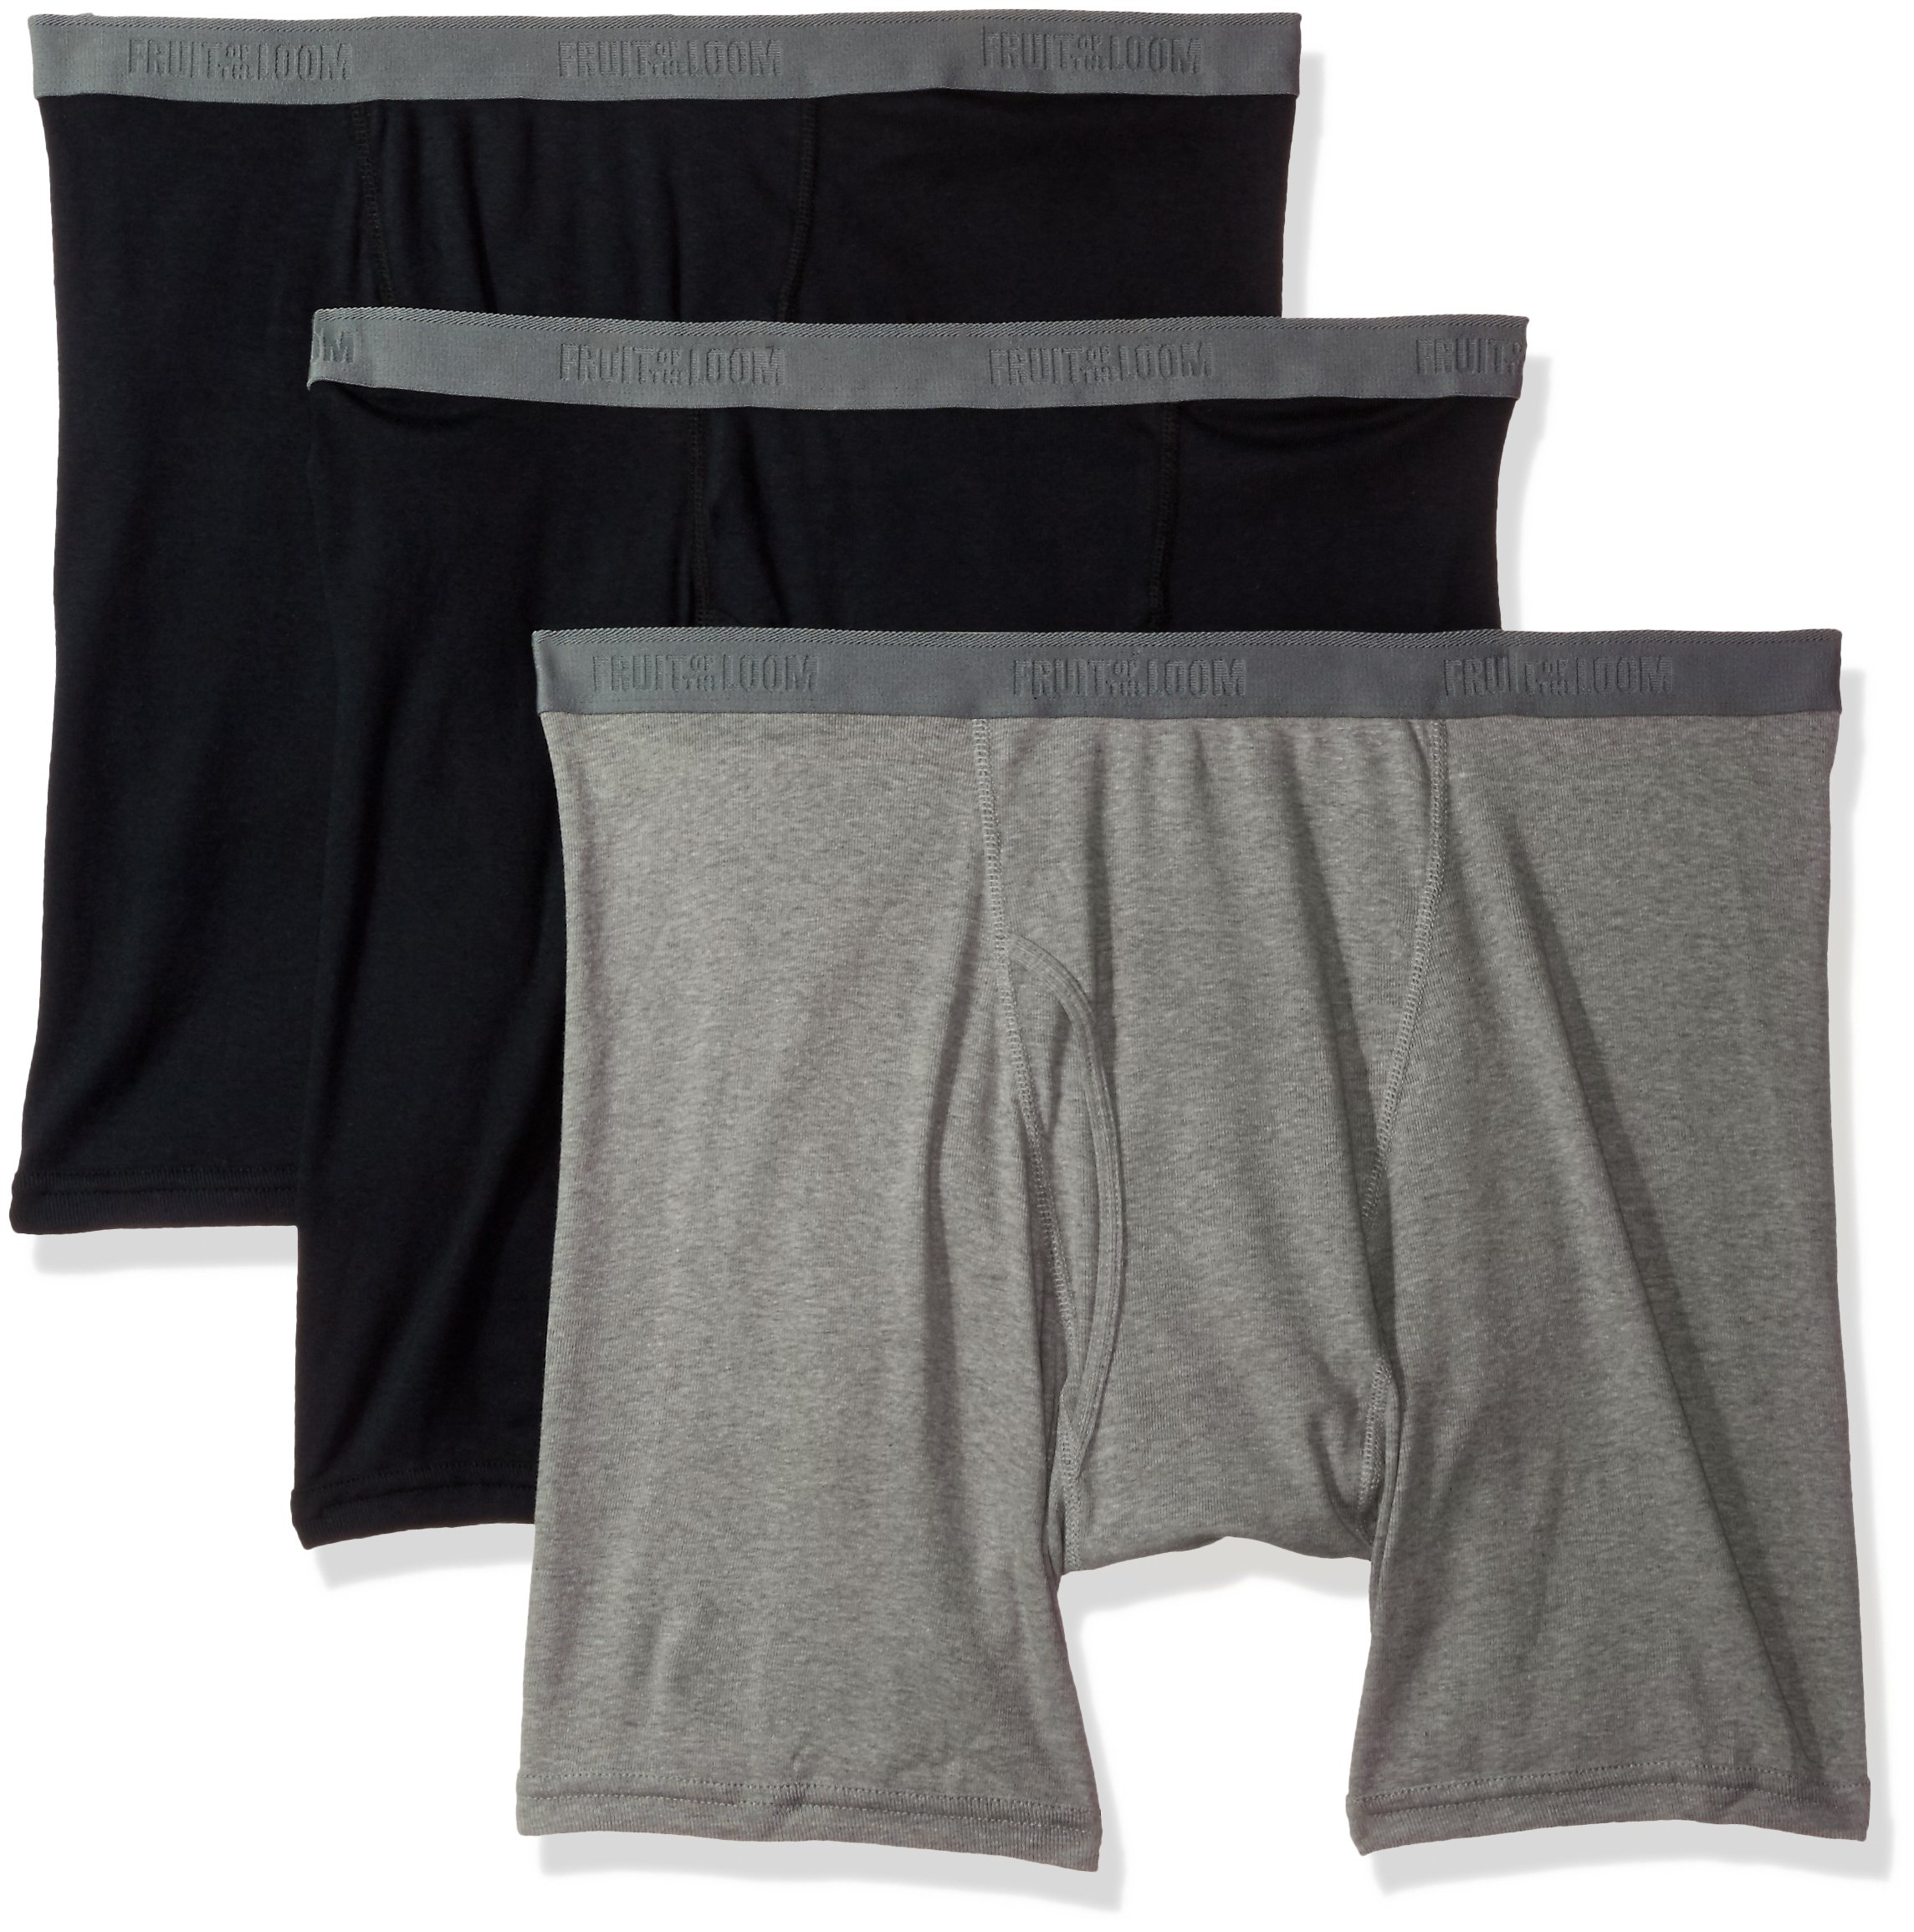 Fruit of the Loom Men's 3-Pack Big Man Premium Boxer Brief, Assorted, 4X-Large by Fruit of the Loom